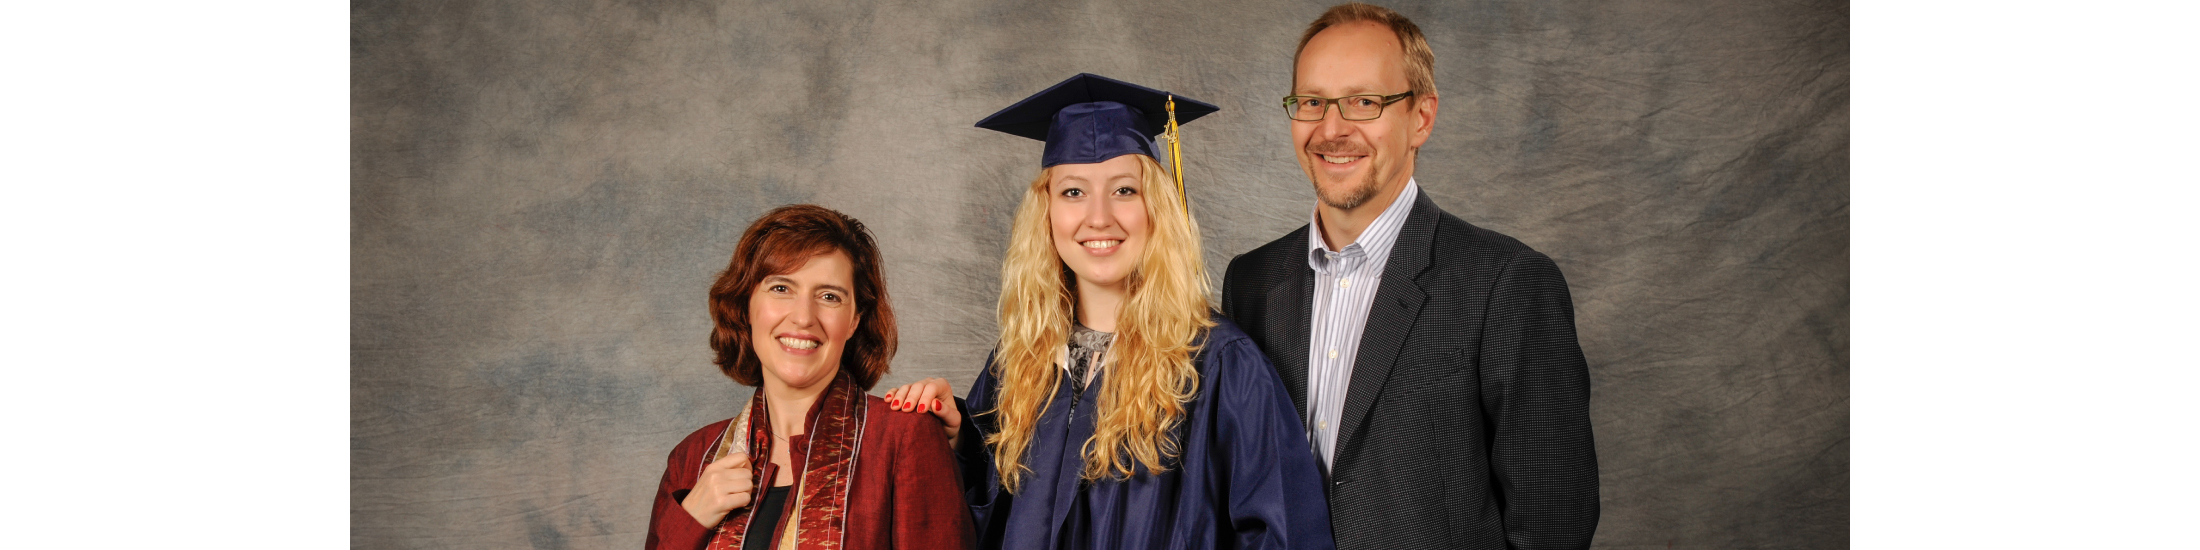 Photograph of graduate with parents